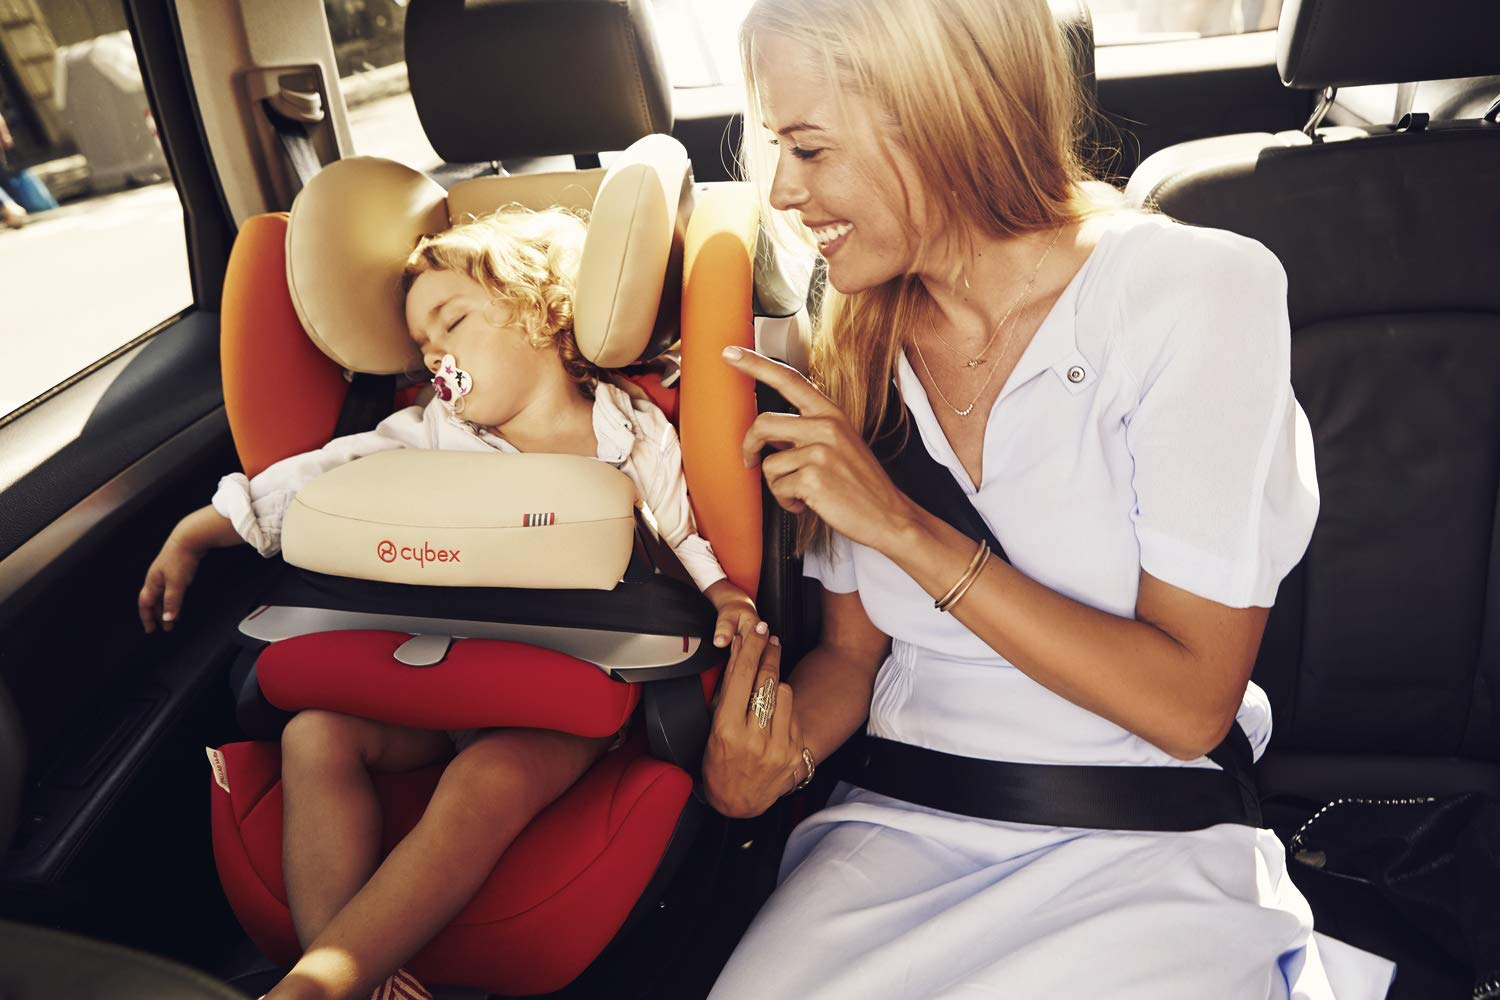 CYBEX Silver Pallas M-Fix 2-in-1 Child's Car Seat, For Cars with and without ISOFIX, Group 1/2/3 (9-36 kg), From approx. 9 Months to approx. 12 Years, Rumba Red Cybex Sturdy and high-quality child car seat for long-term use - For children aged approx. 9 months to approx. 12 years (9-36 kg), Suitable for cars with and without ISOFIX Maximum safety - Depth-adjustable impact shield, 3-way adjustable reclining headrest, Built-in side impact protection (L.S.P. System), Energy-absorbing shell 12-way height-adjustable comfort headrest, One-hand adjustable reclining position, Easy conversion to Solution M-Fix car seat for children from 3 years (group 2/3) by removing impact shield and base 6